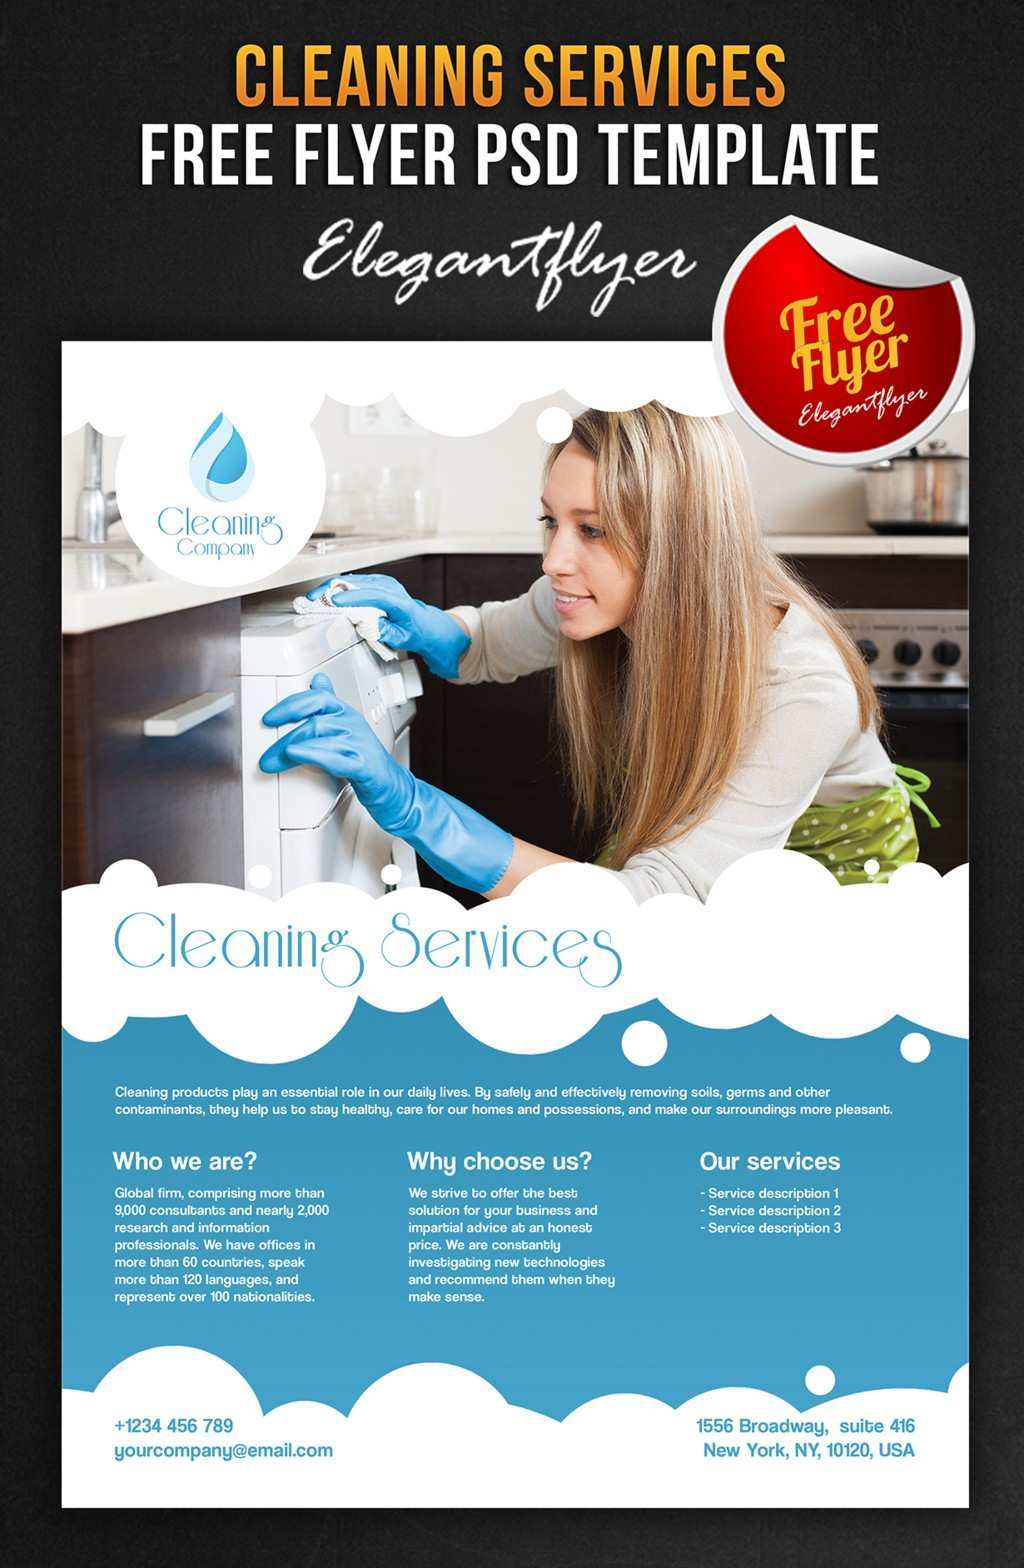 92 Report Cleaning Services Flyers Templates Maker for Cleaning Services Flyers Templates